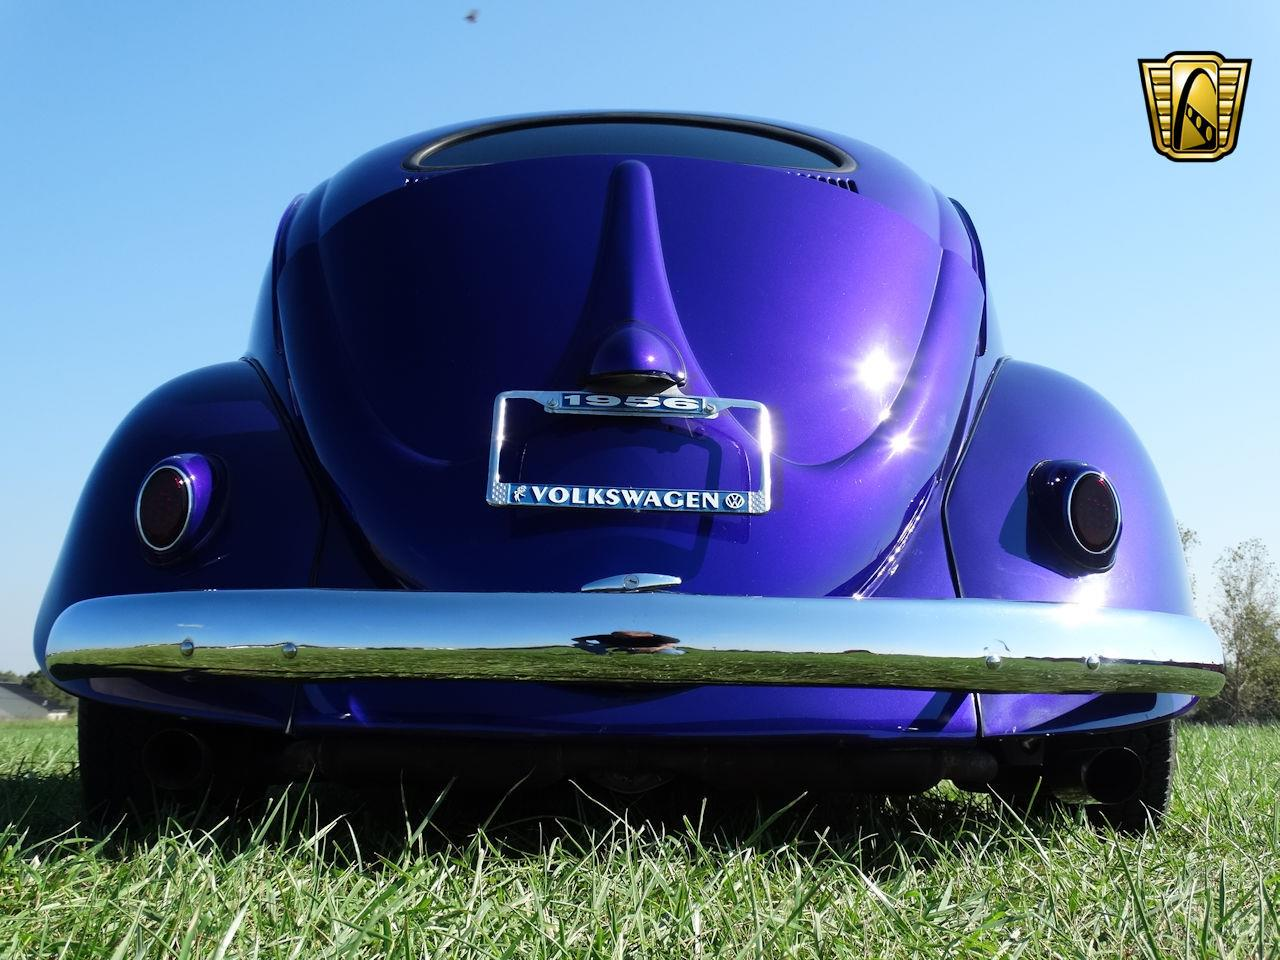 Large Picture of 1956 Volkswagen Beetle located in Indiana - $23,995.00 - OOT8